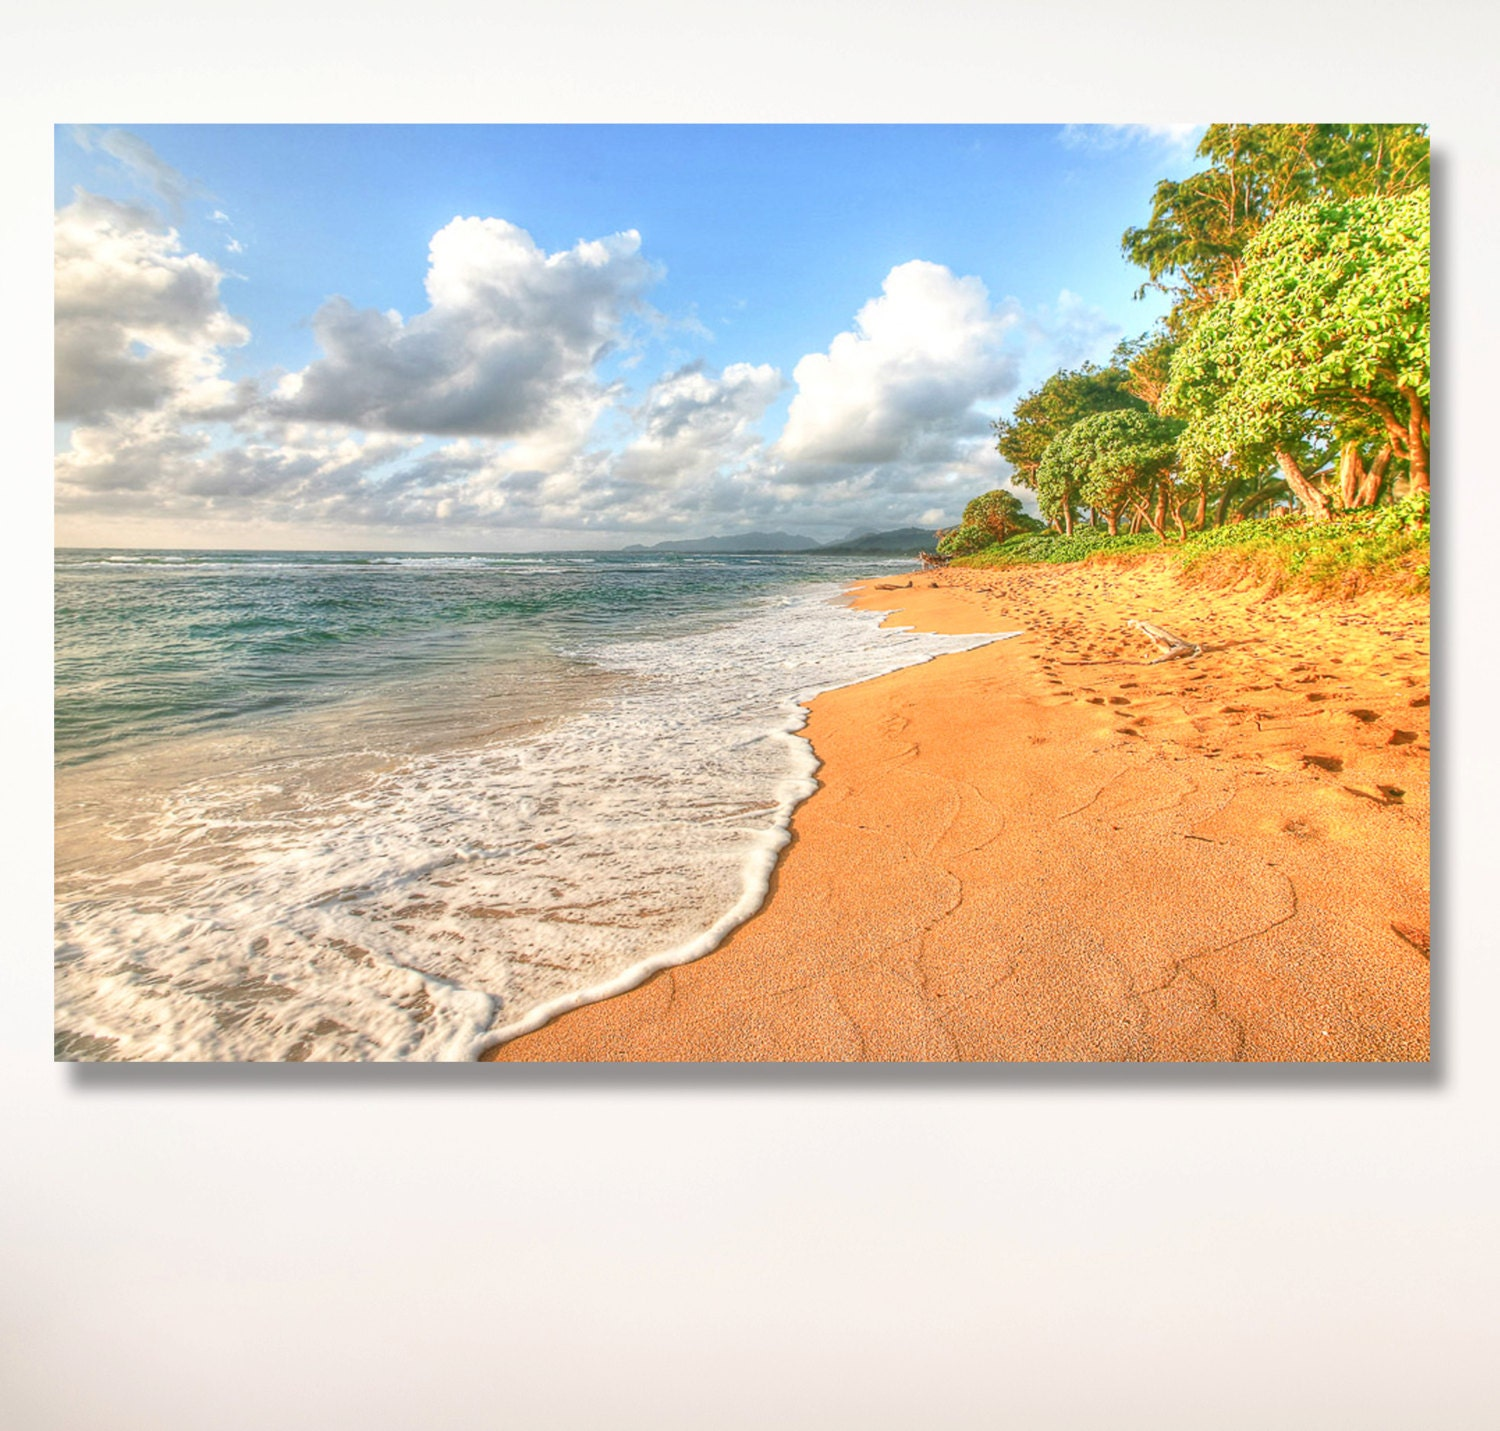 Kauai Beaches: Kauai Beach And Water Photo Ocean Photography / Kauai Beach